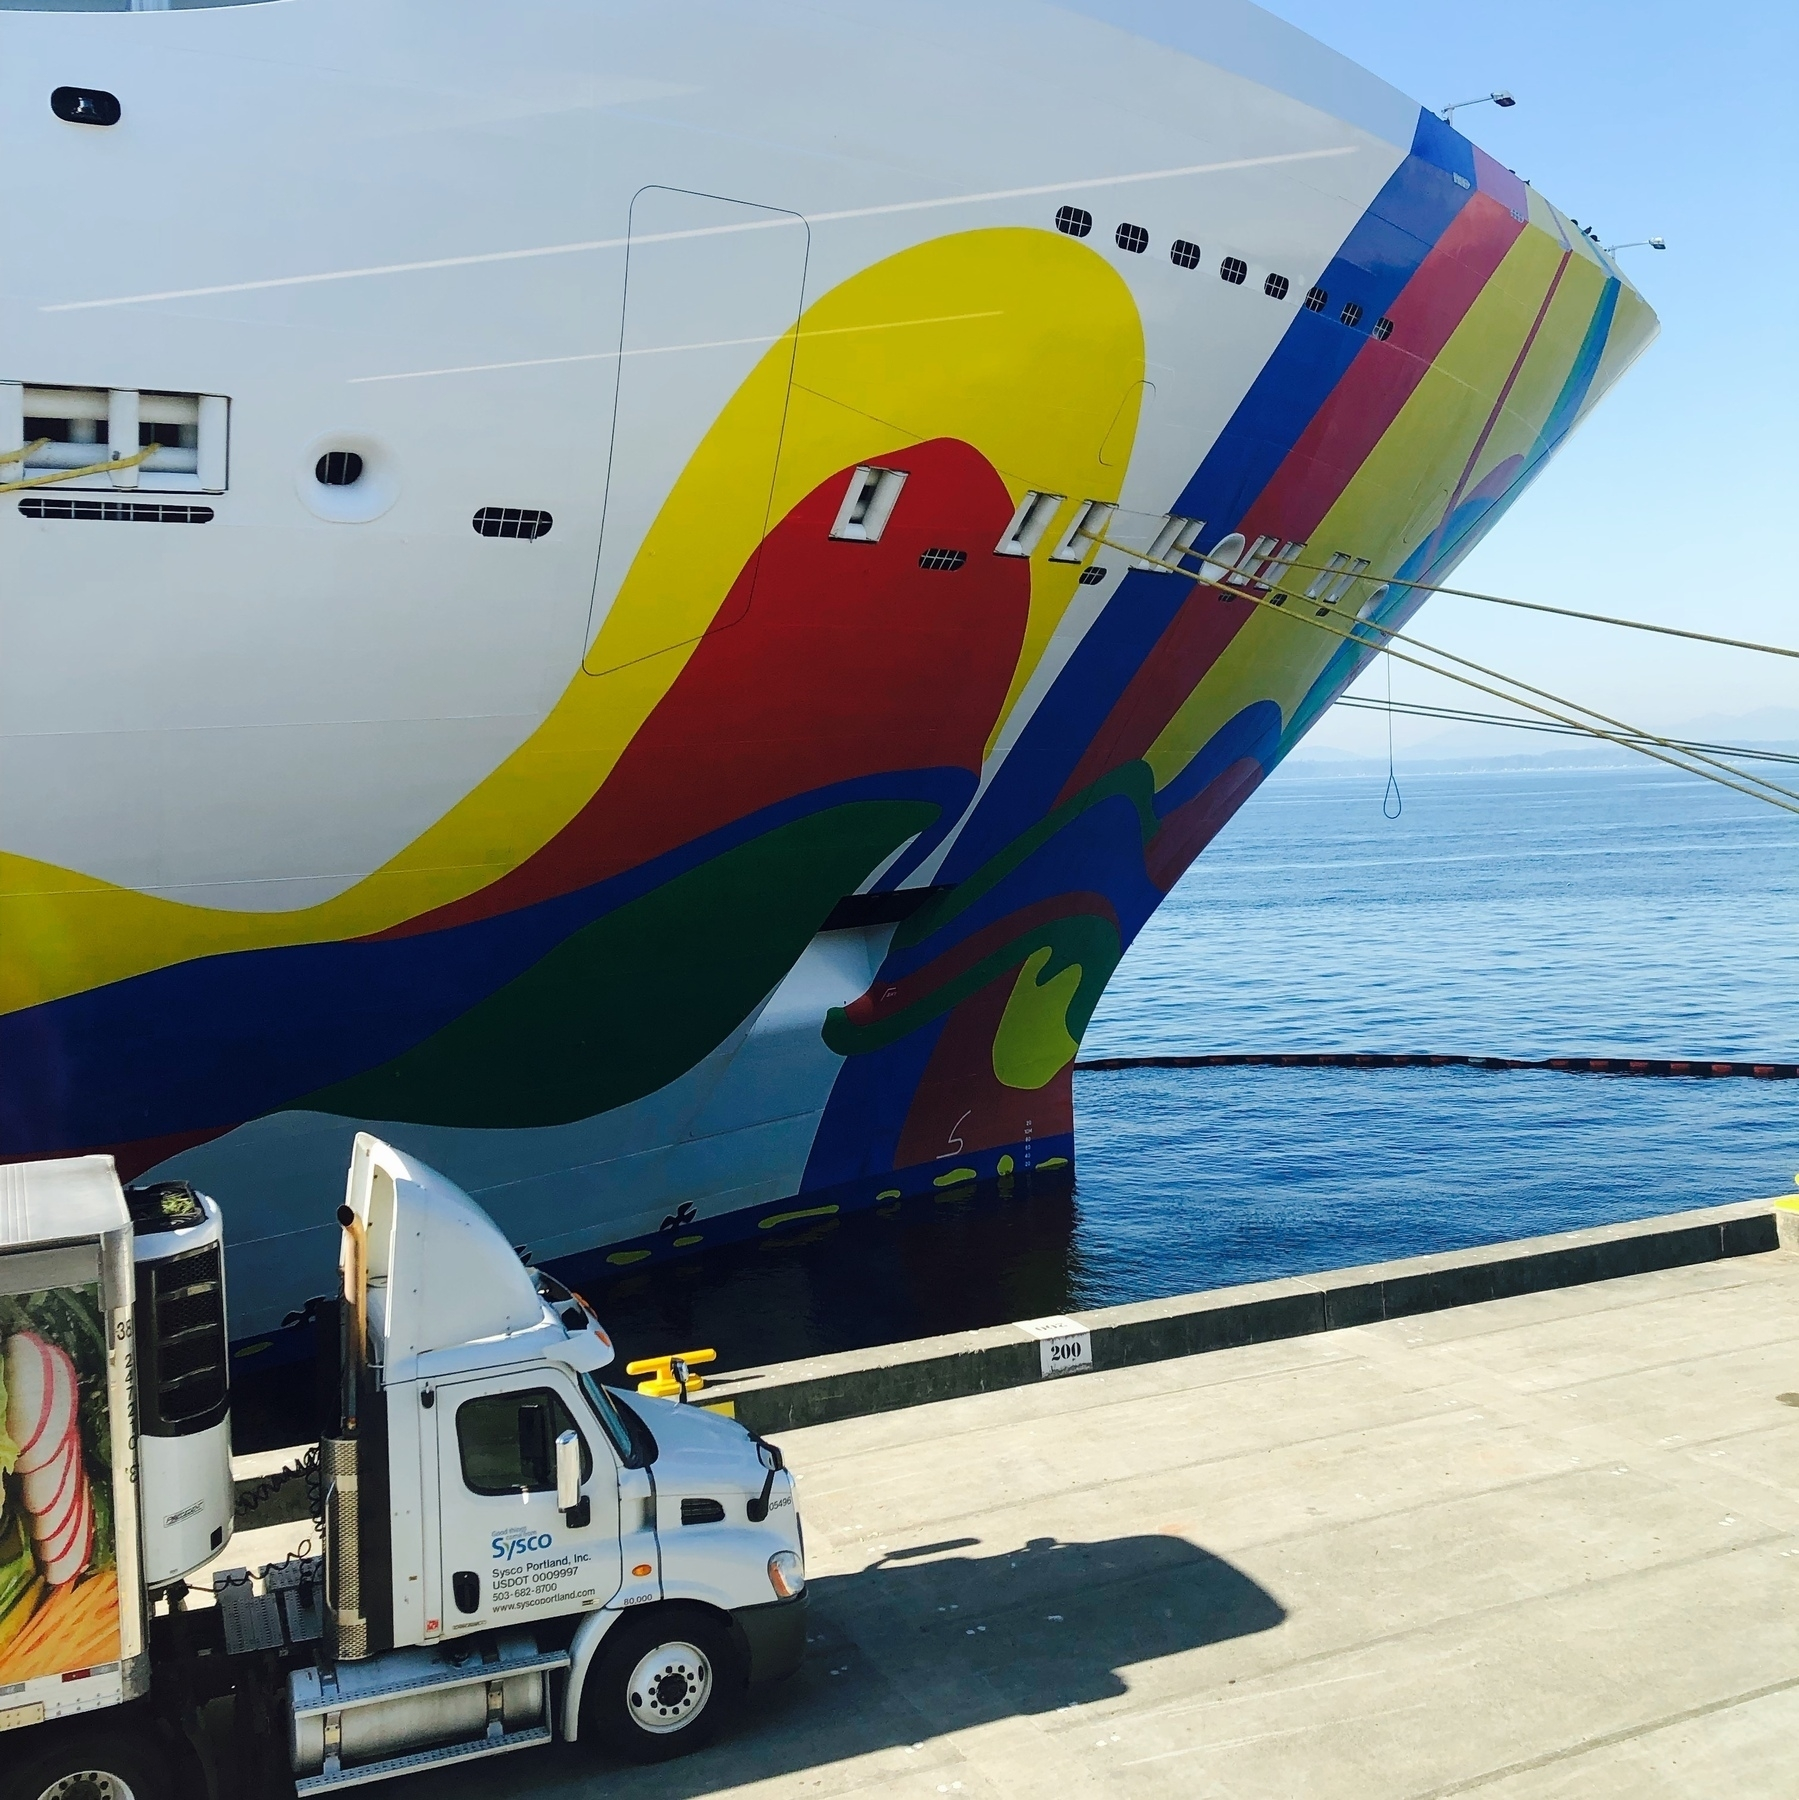 The front of a cruise ship splashed with red yellow and blue swirls. An semi truck on the dock below looks like a toy compared to the behemoth ship.